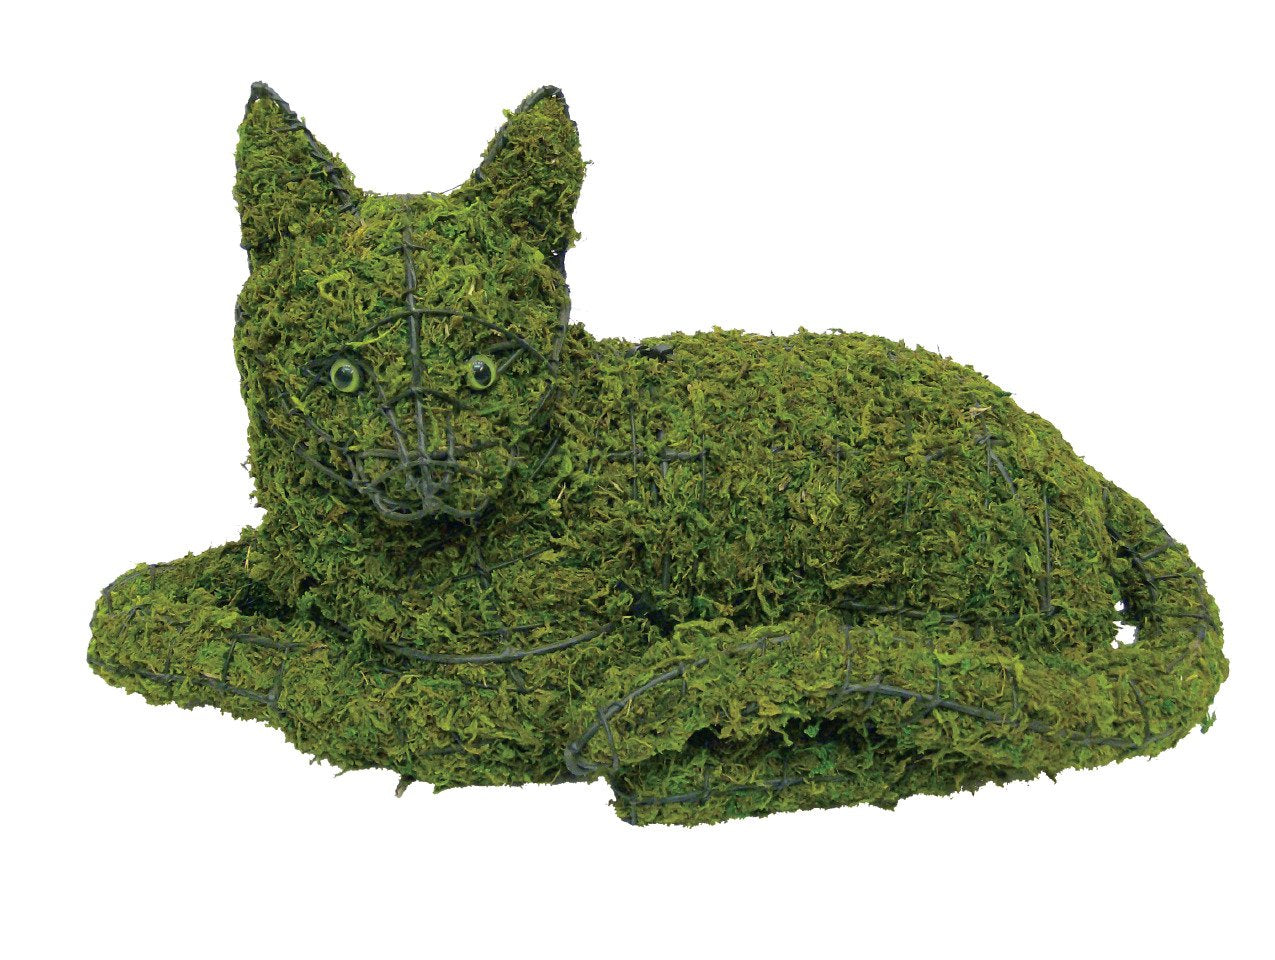 "Cat Lying 15"" Moss Topiary Sculpture"